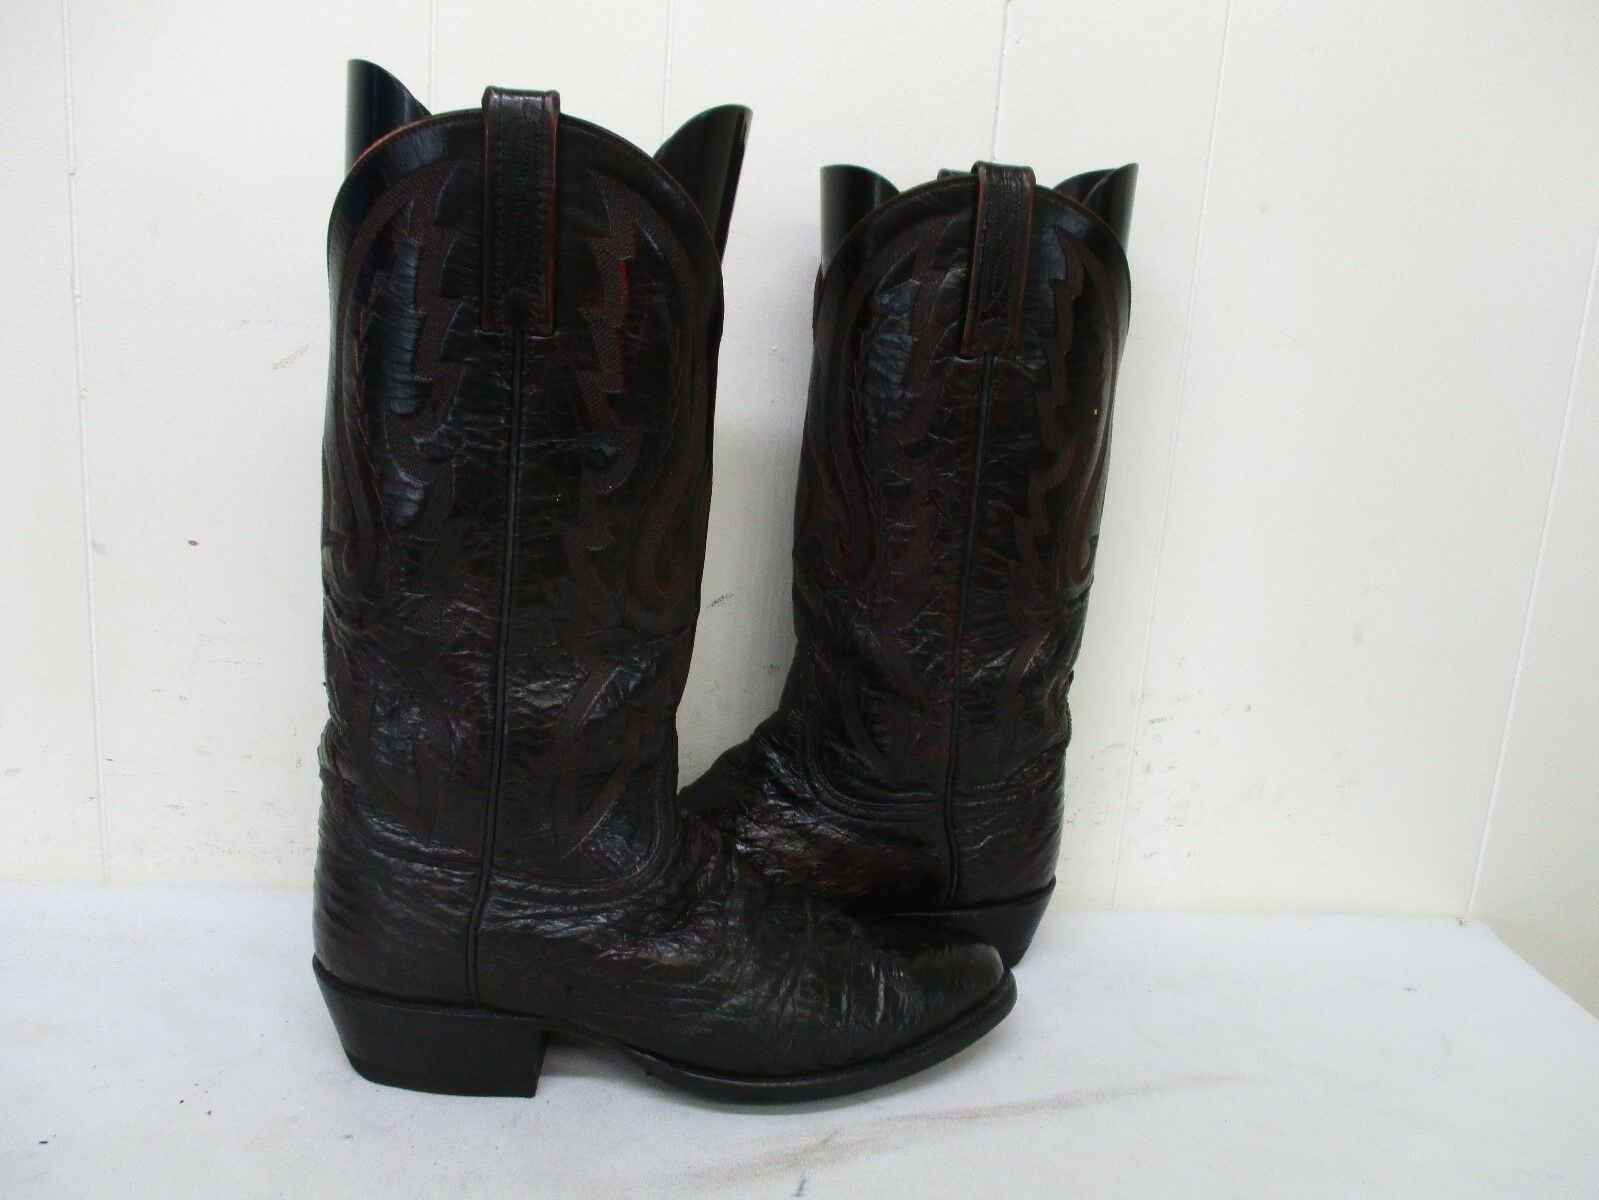 LUCCHESE 2000 Oxblood Ostrich Leather Cowboy Boots Mens Size 8 D USA